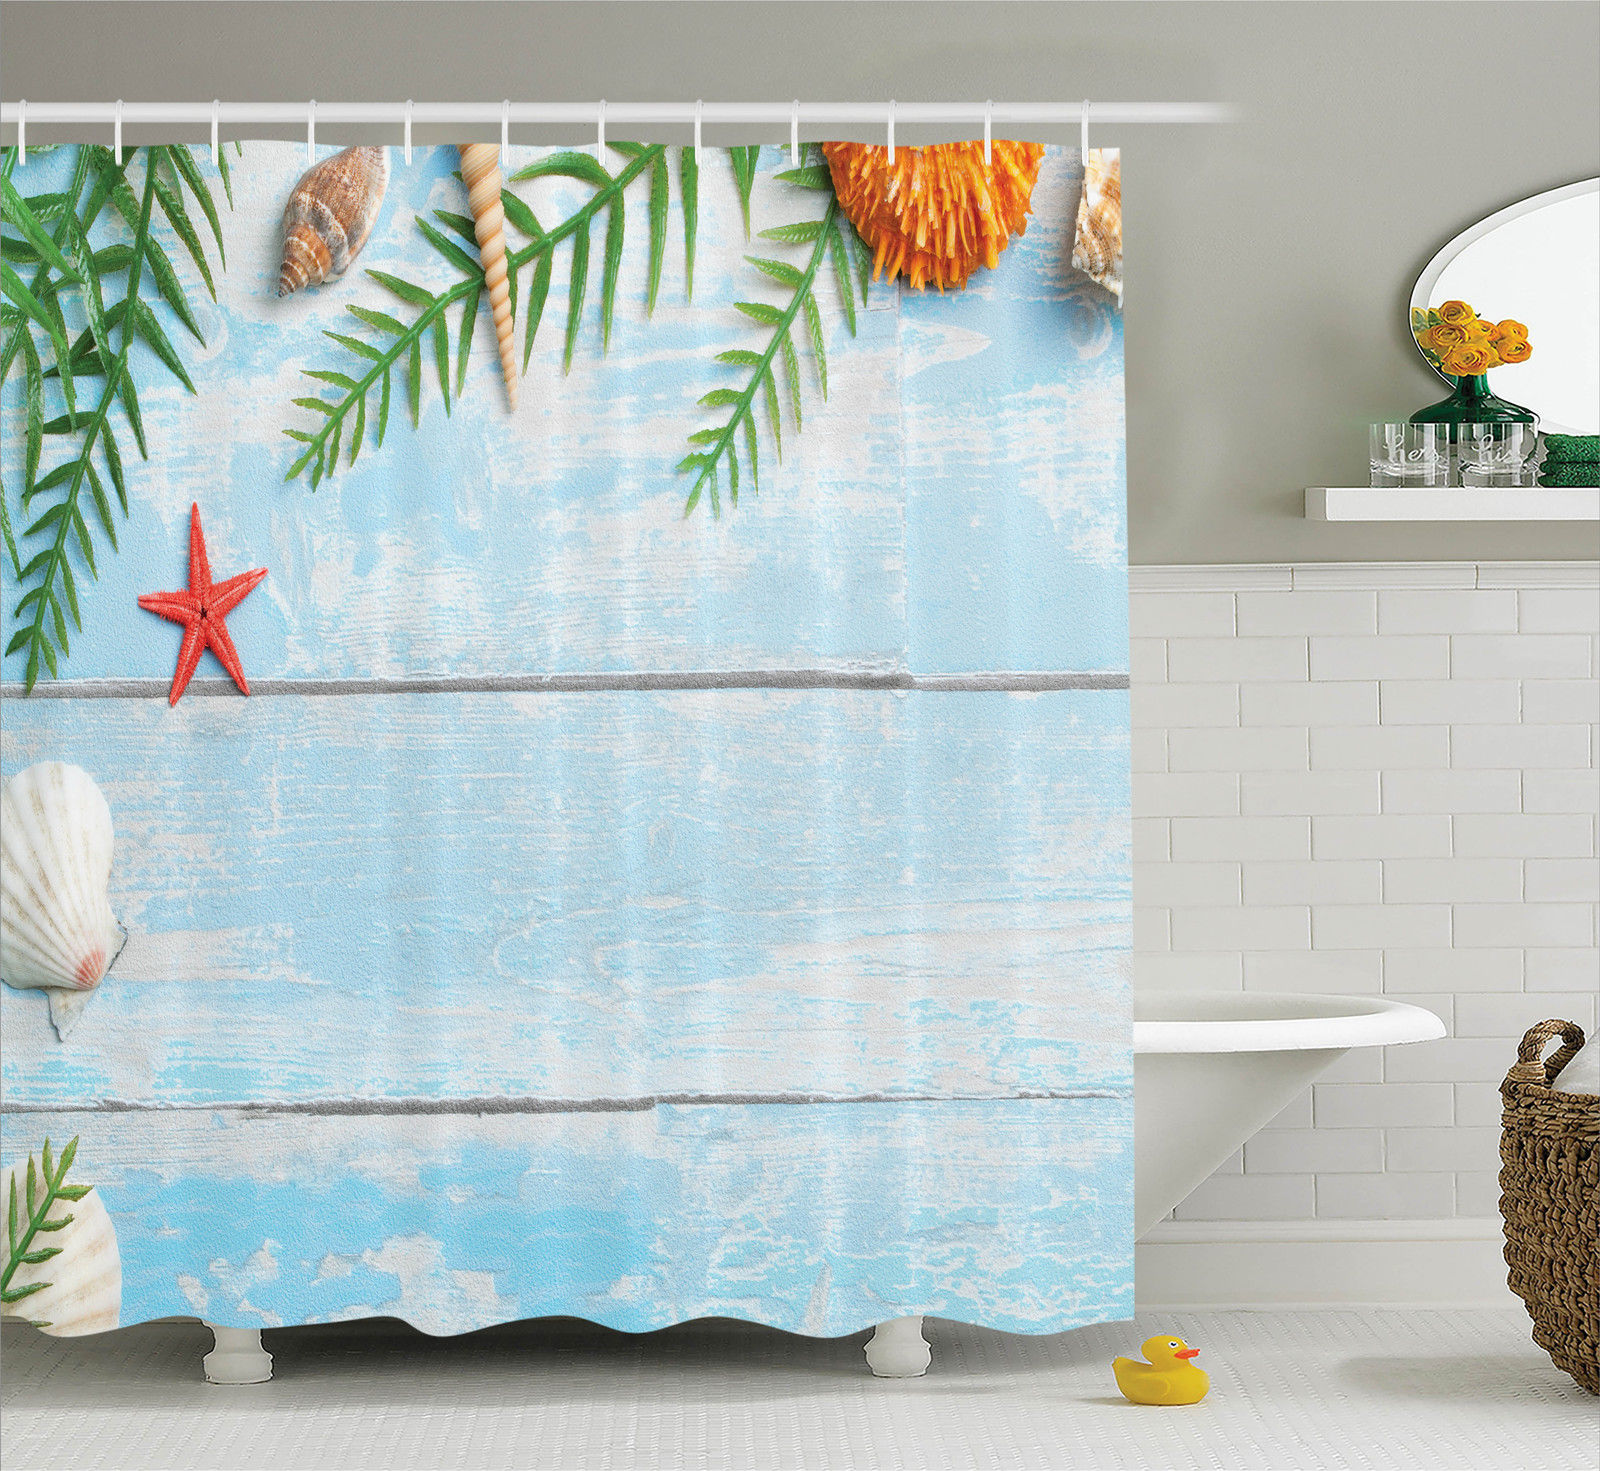 Tropical Beach Theme Rustic Style Seashells and Palms Picture Shower Curtain Set